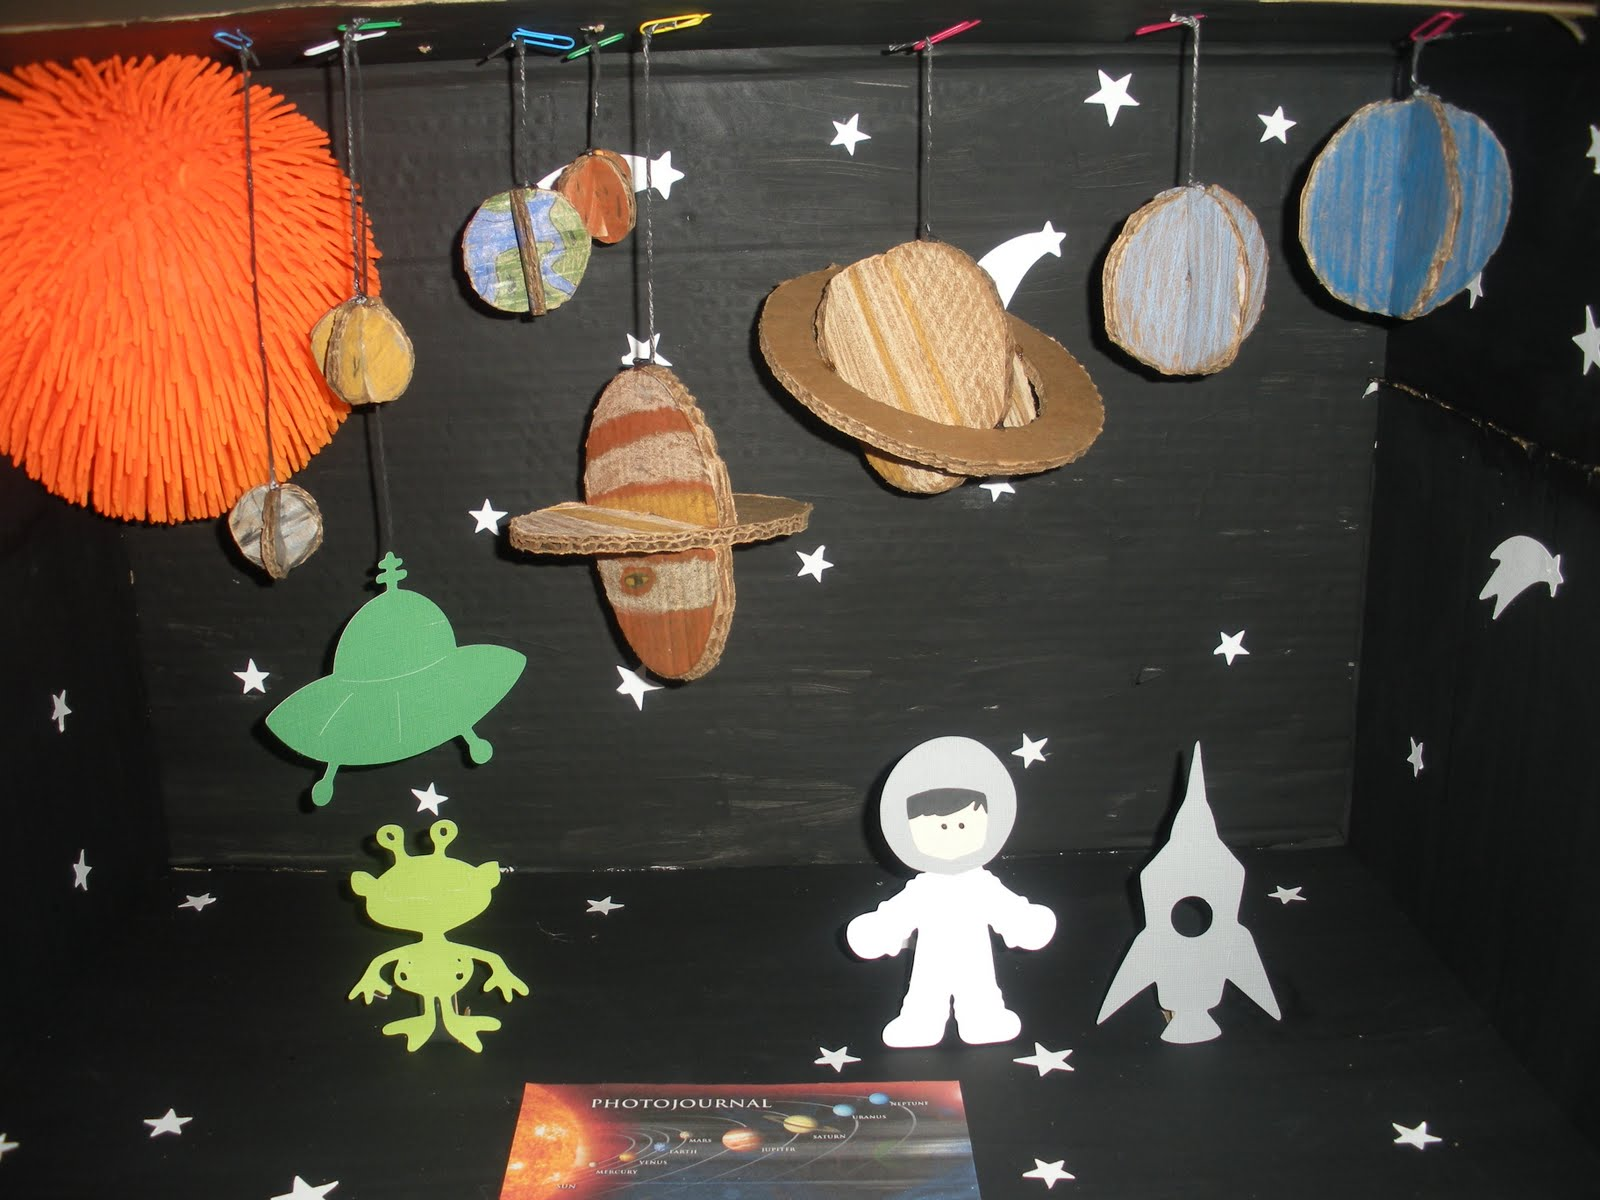 Solar System Pictures For Kids Project : 3d Solar System Projects For Kids Images & Pictures - Becuo